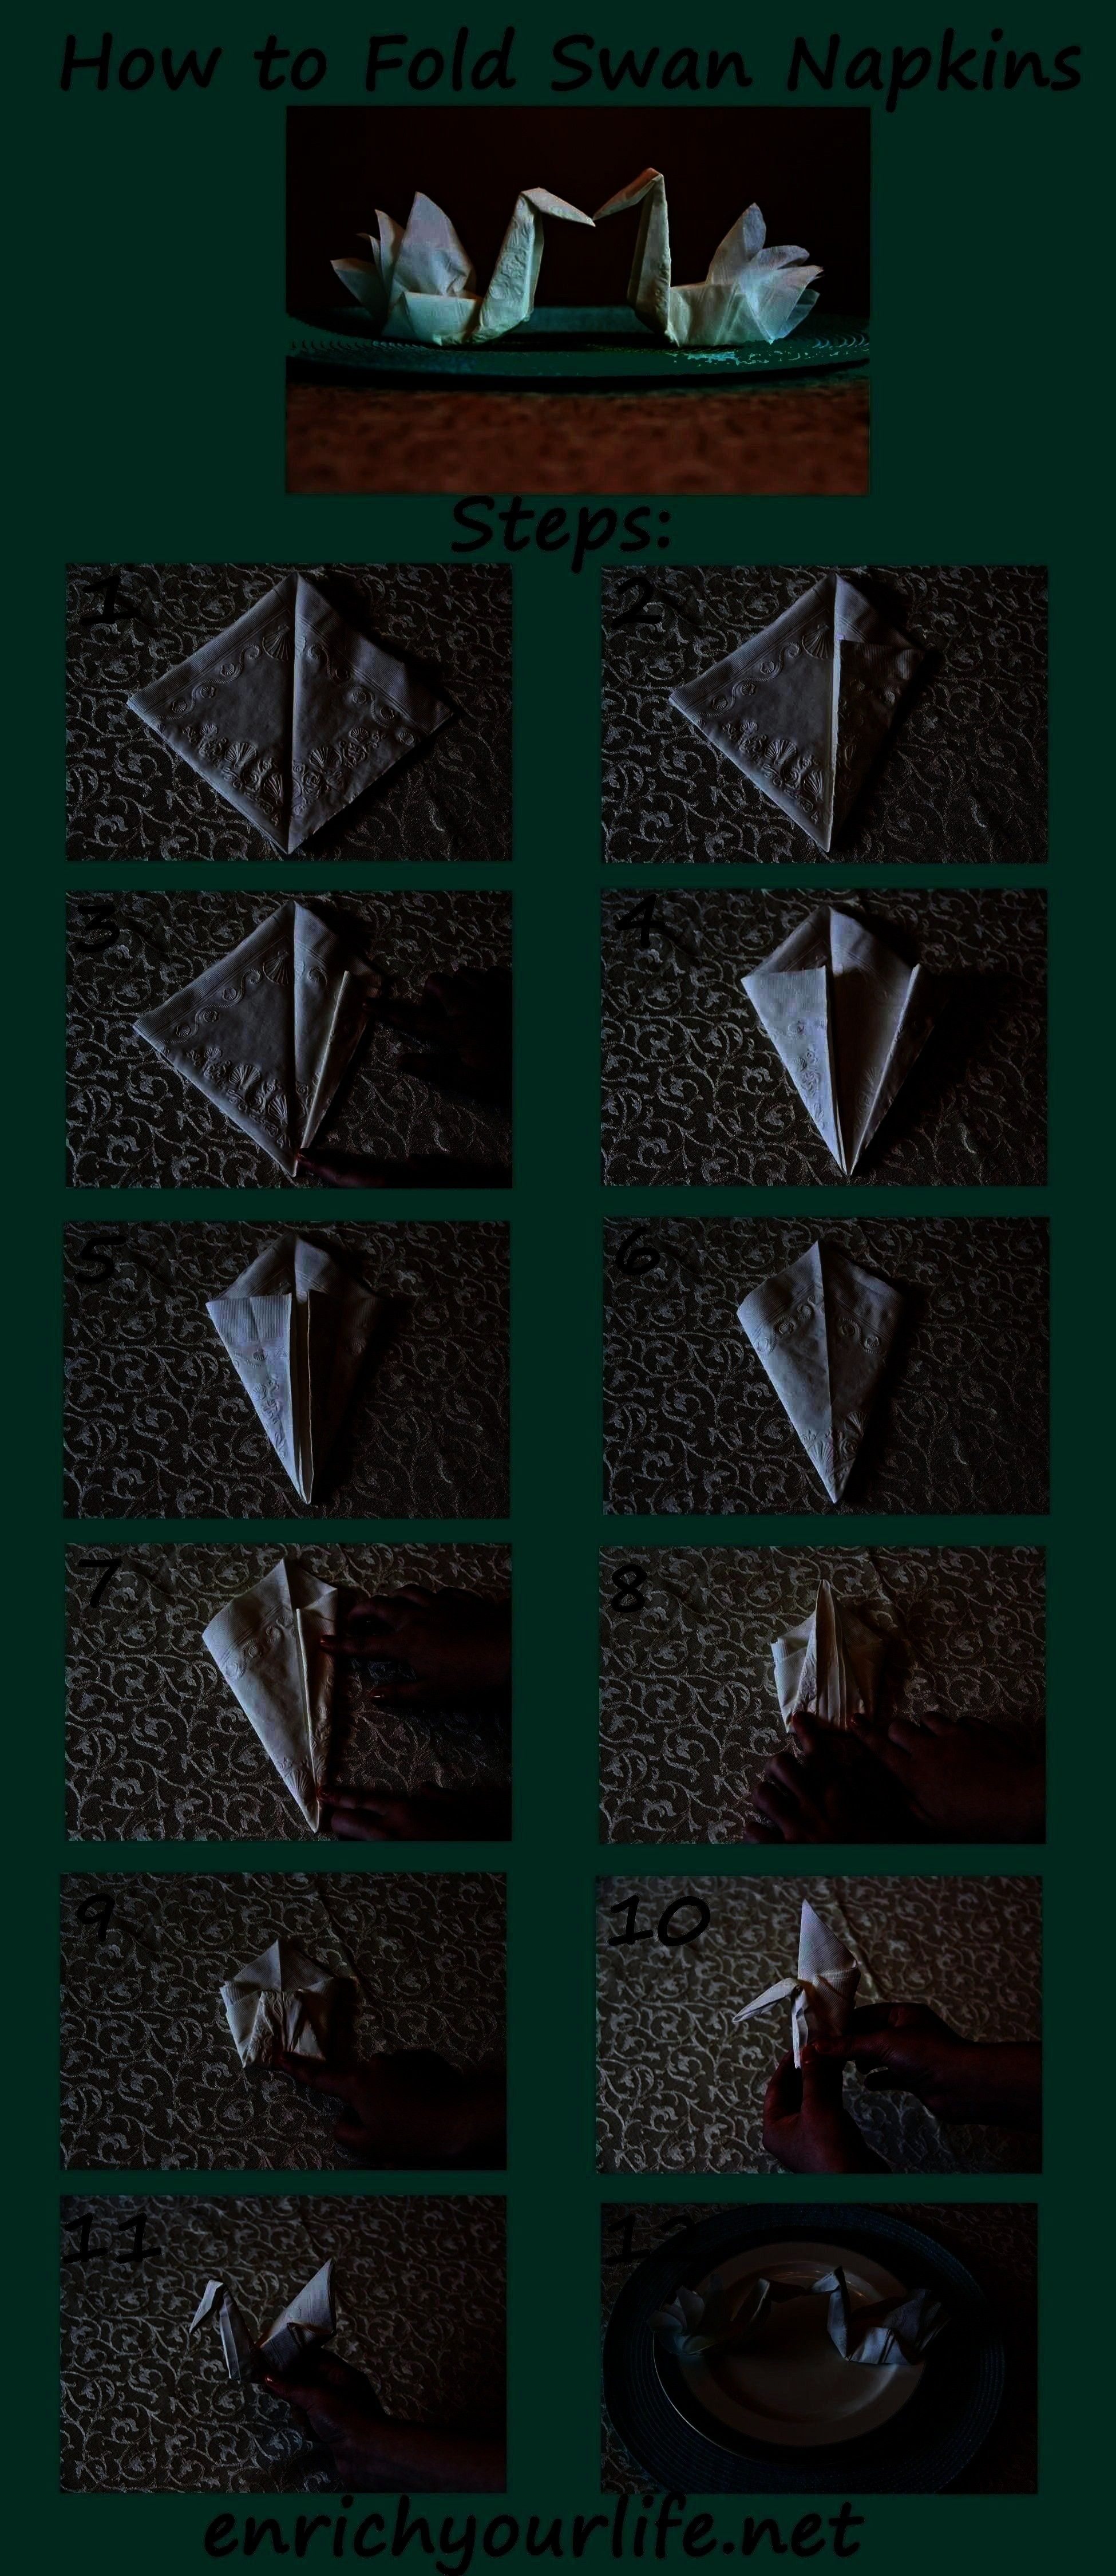 Step enrichyourlife01 How to Fold a Swan Napkin Step by Step enrichyourlife01 Diy AbschnittHow to Fold a Swan Napkin Step by Step enrichyourlife01 Diy Abschnittto Fold a...